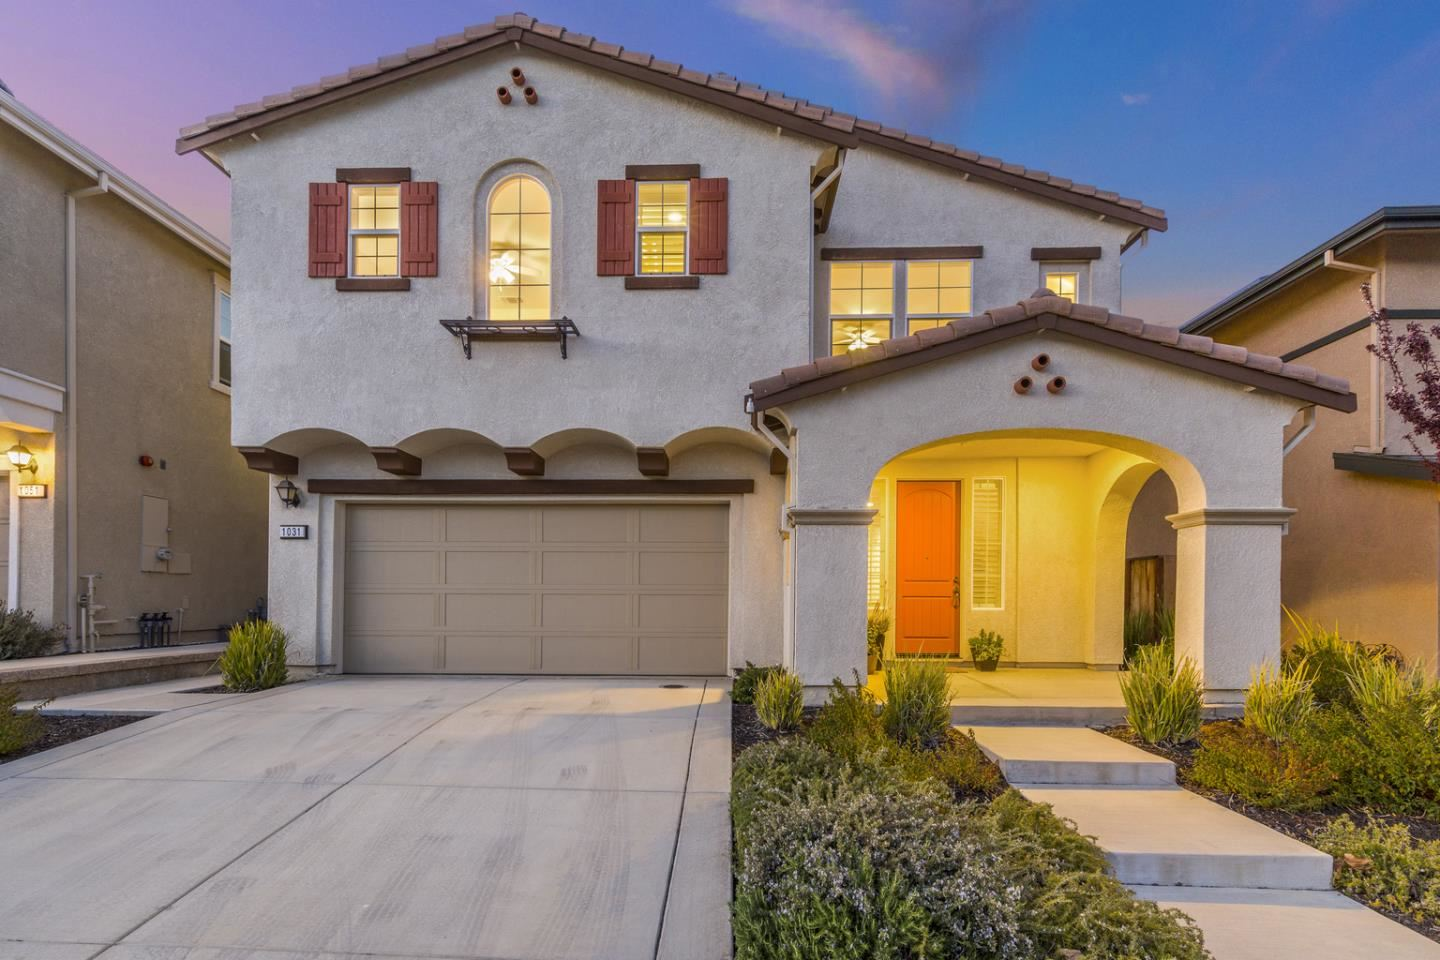 Photo for 1031 Viognier WAY, GILROY, CA 95020 (MLS # ML81837188)